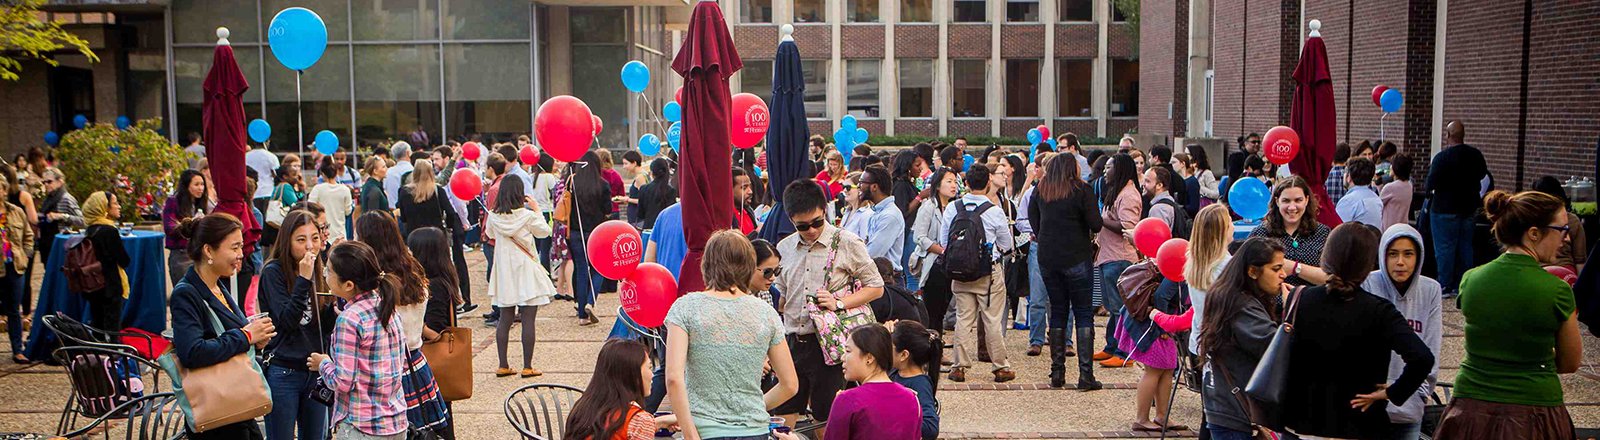 Penn GSE Students, Faculty, and Staff celebrate in the courtyard